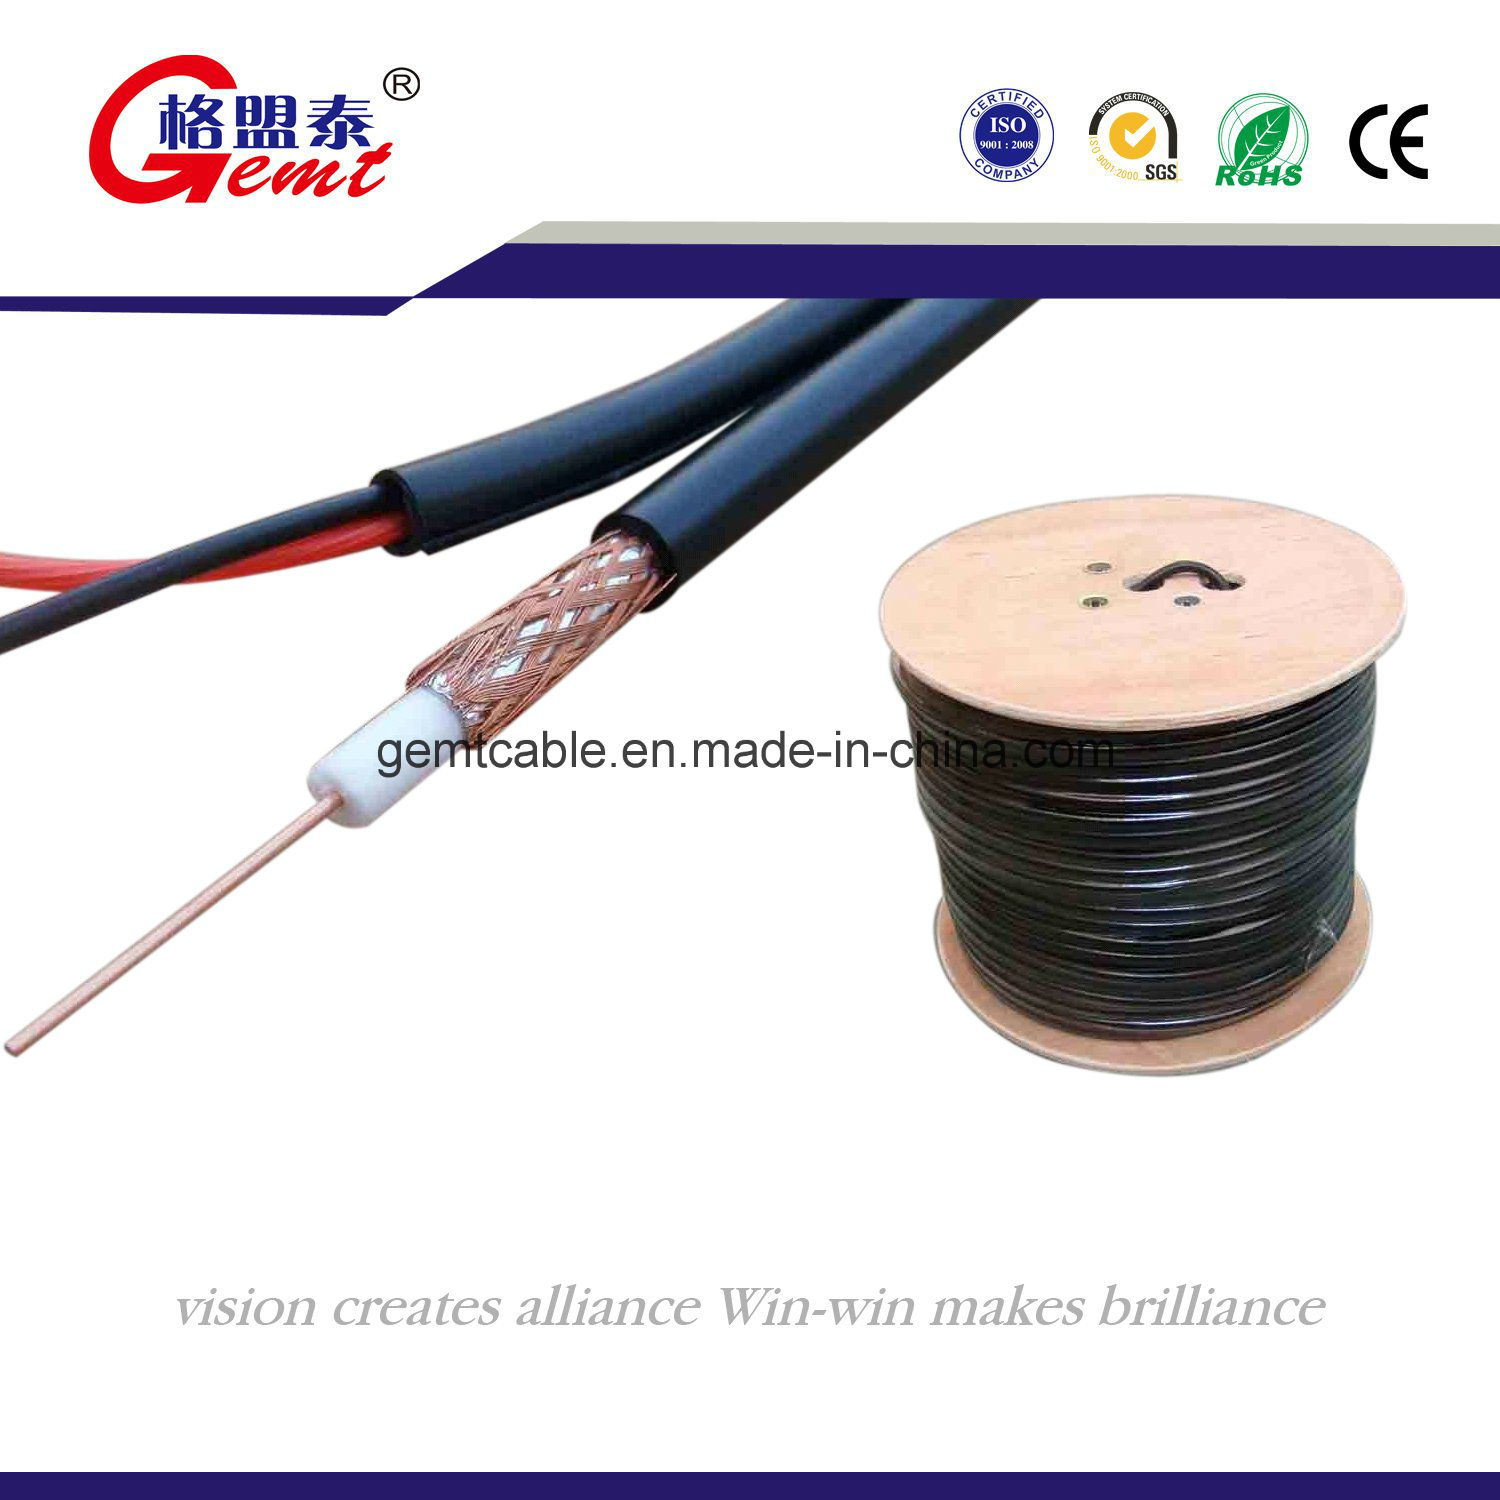 China Hot Sale Types of Sywv-Double Coaxial Cable Photos & Pictures ...